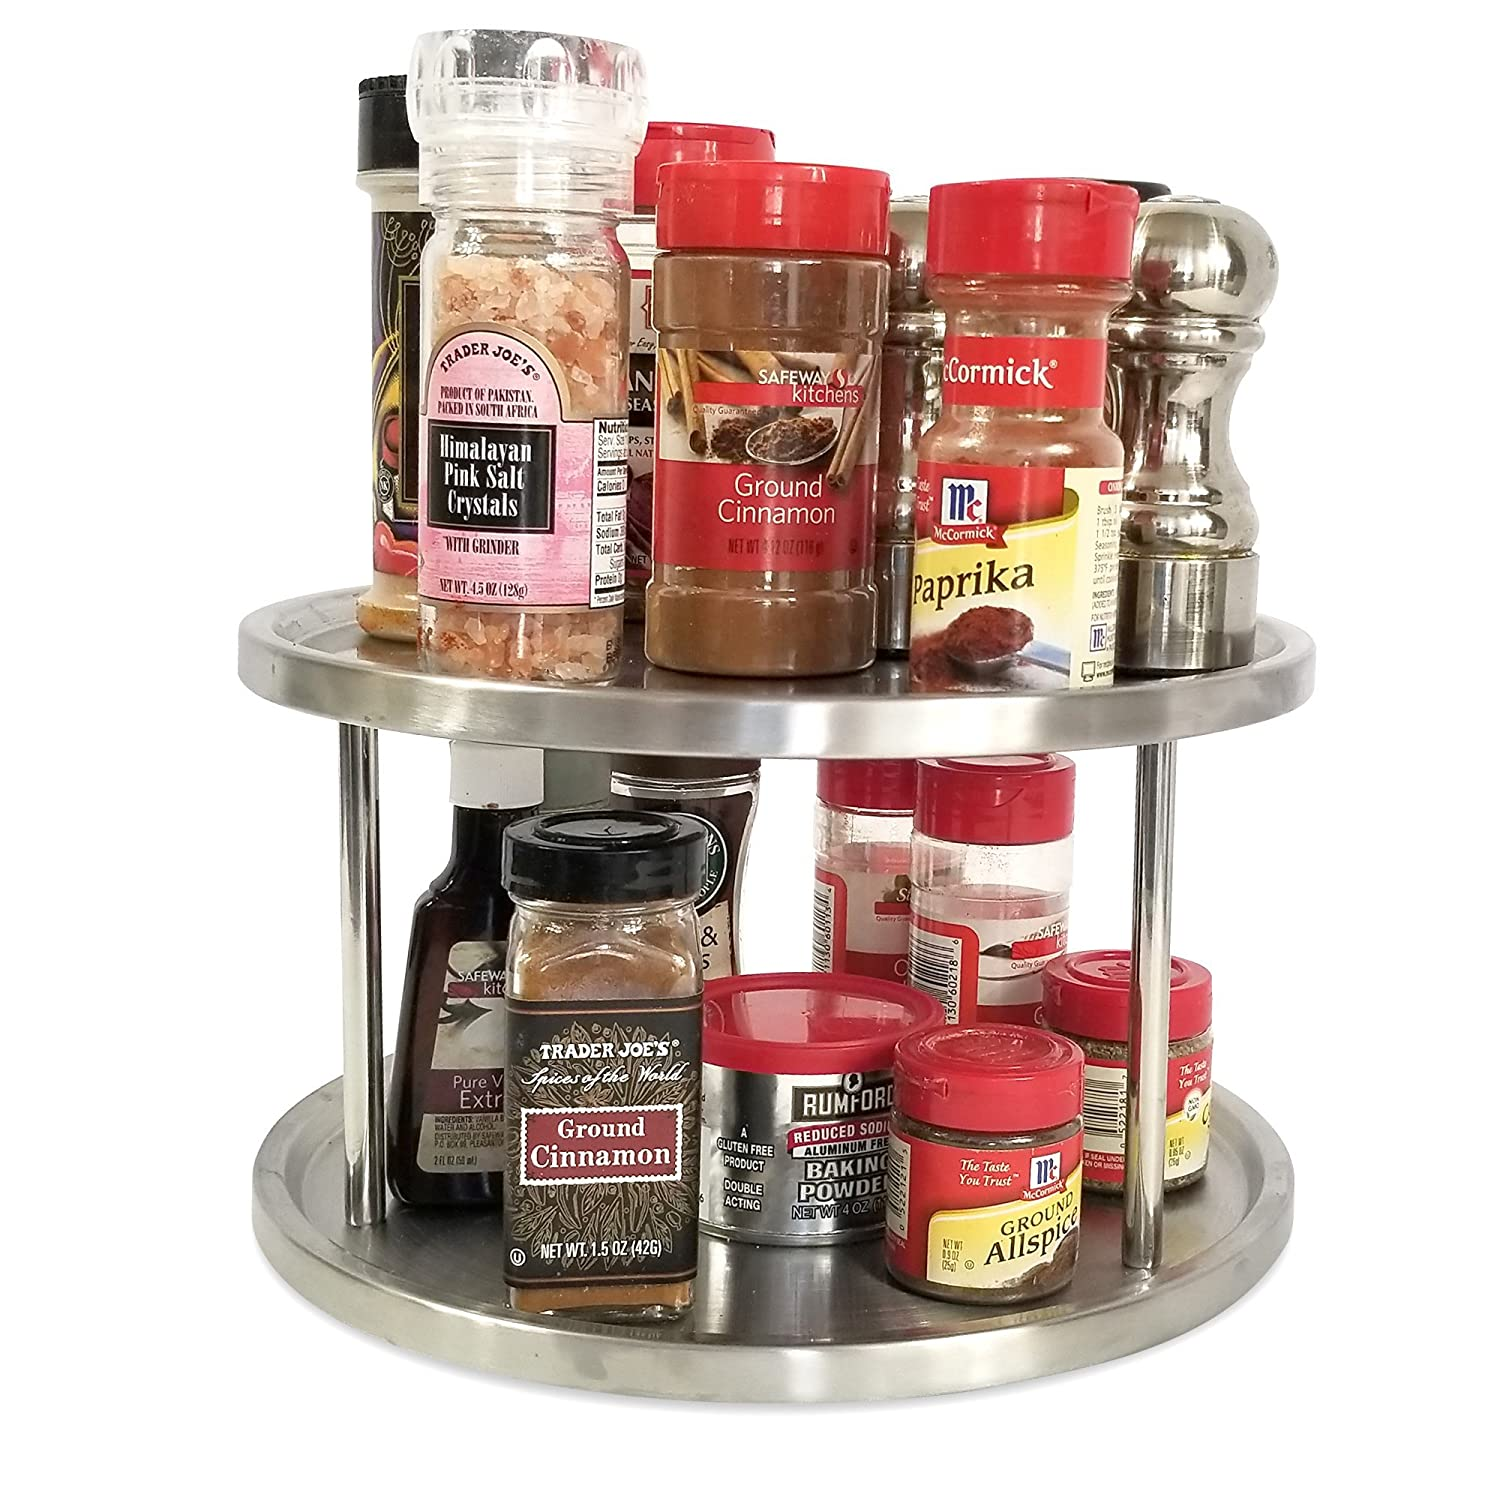 lazy susan 10 inch two tier turntable spice rack cabinet organizer also for appetizer tray